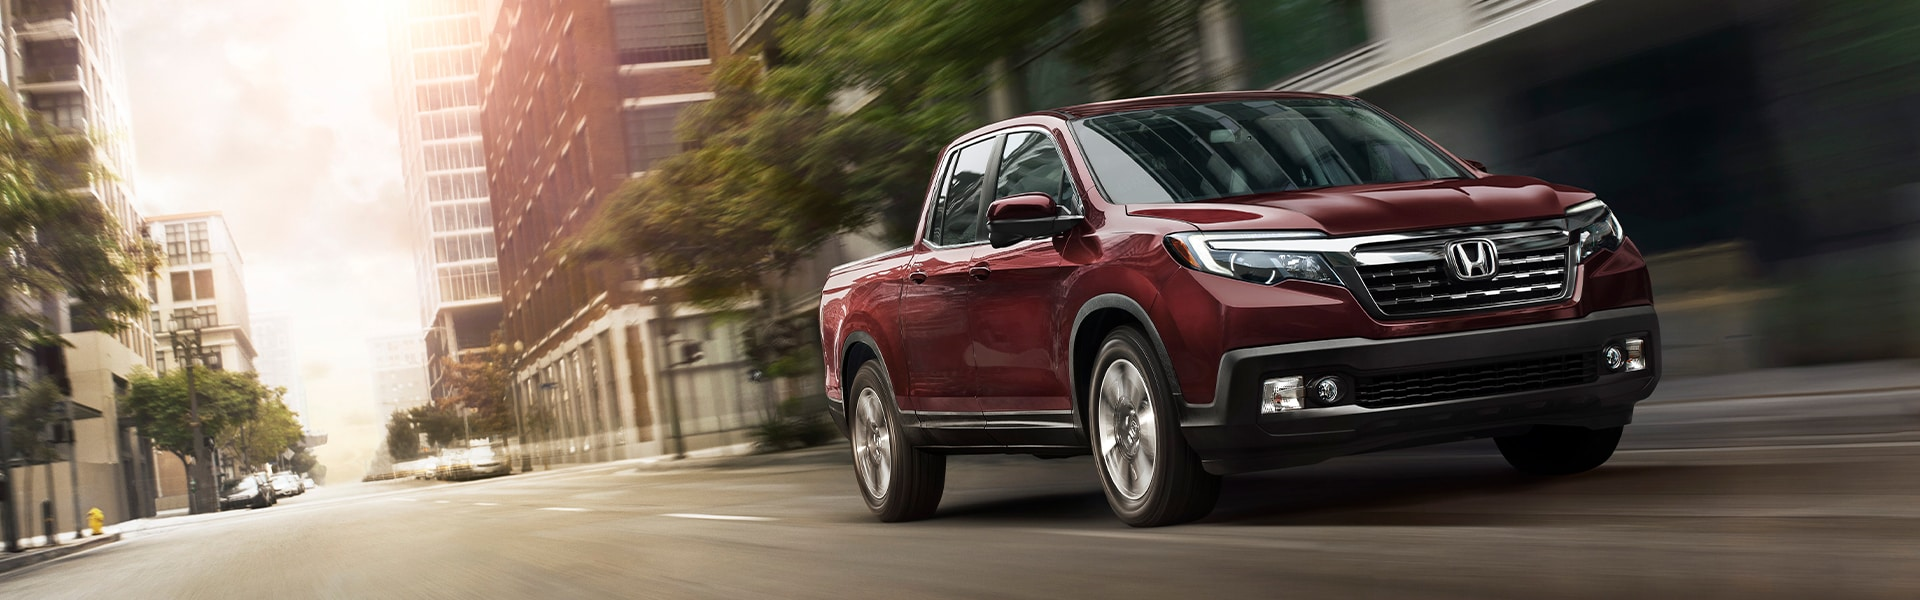 Boch Honda West is a Family Owned Dealership near Acton, MA | Red 2020 Ridgeline Driving Through City